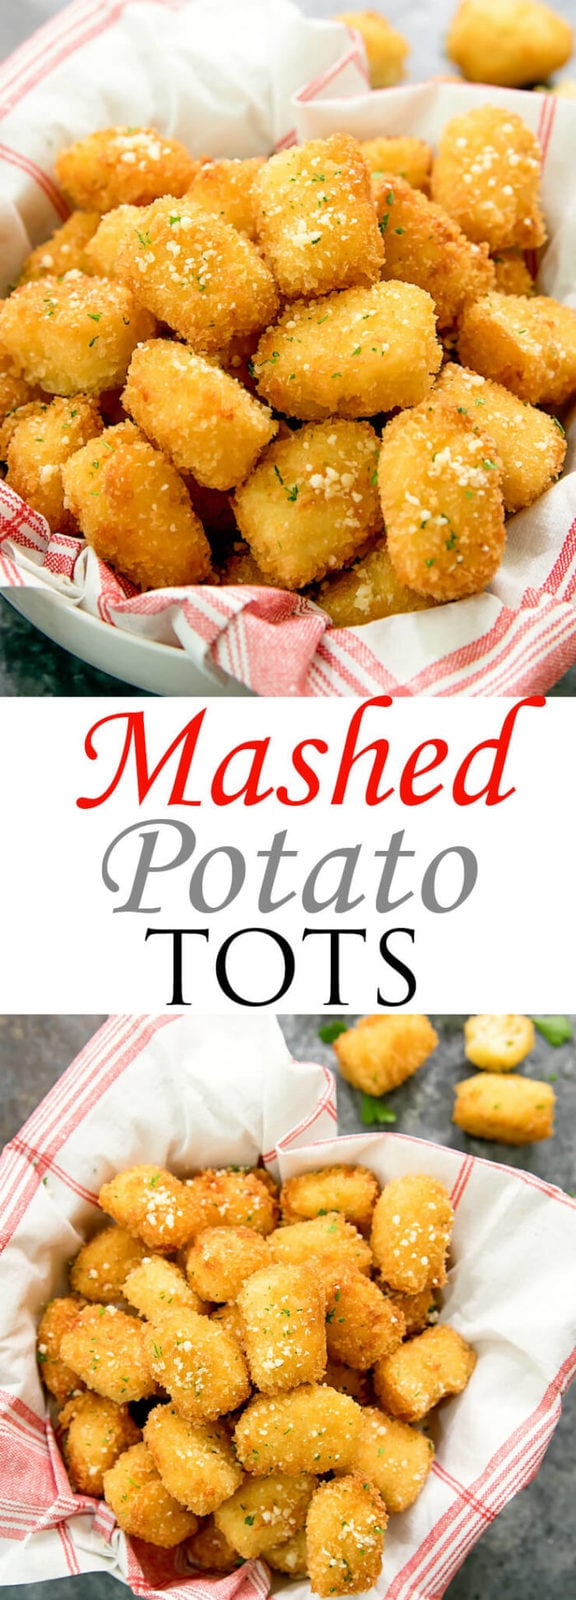 Mashed Potato Tots